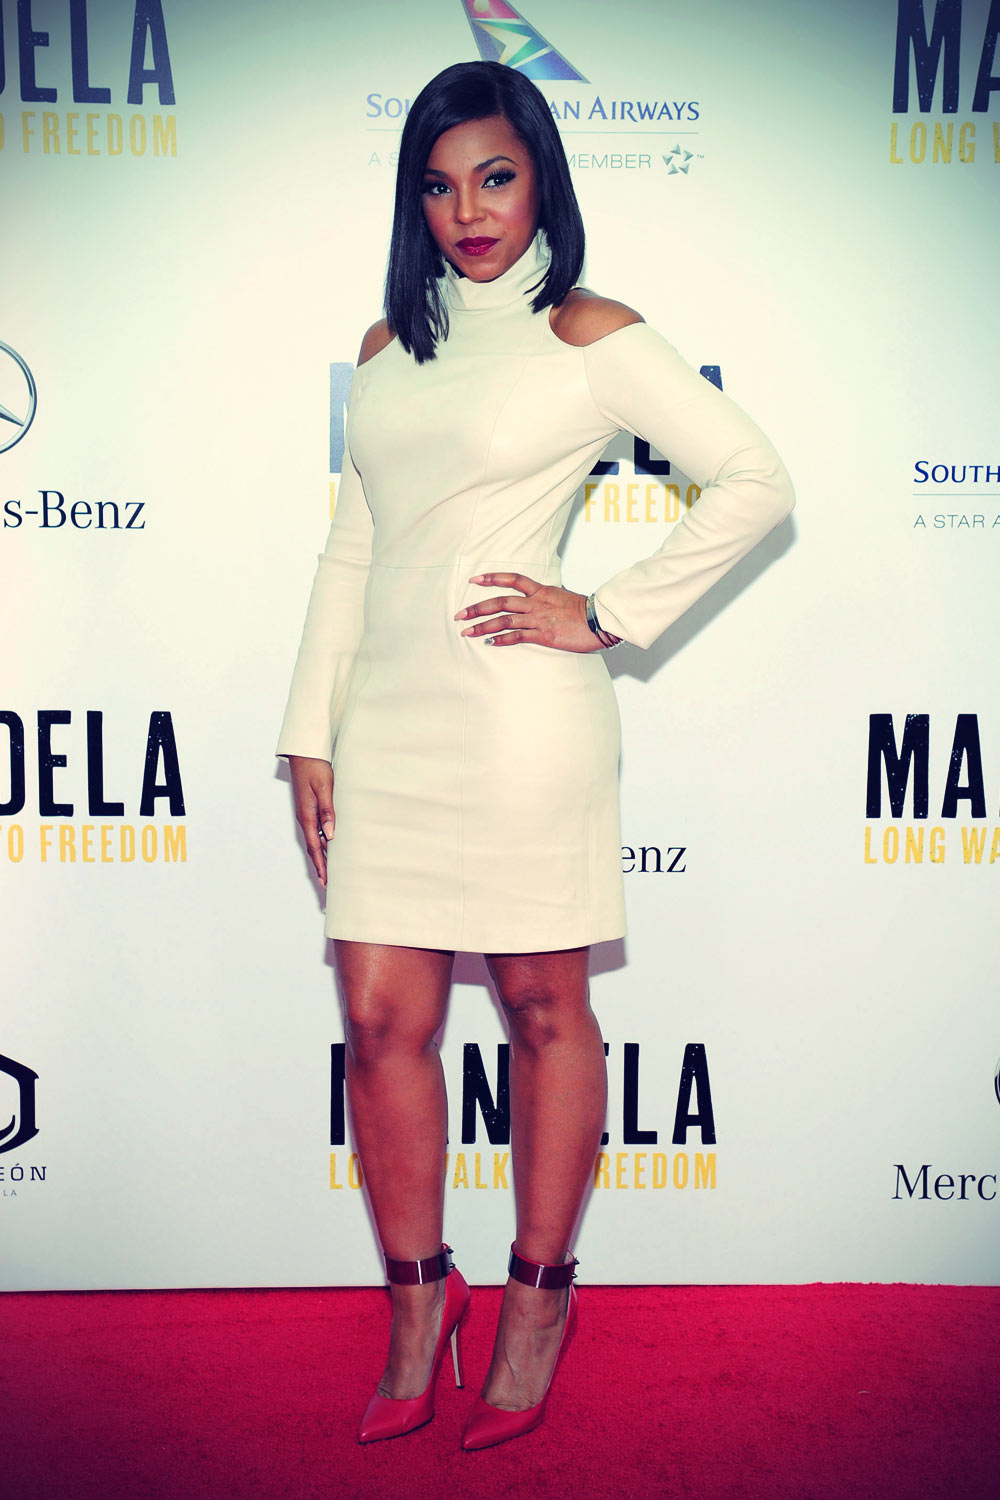 Ashanti attends the premiere of Mandela Long Walk To Freedom